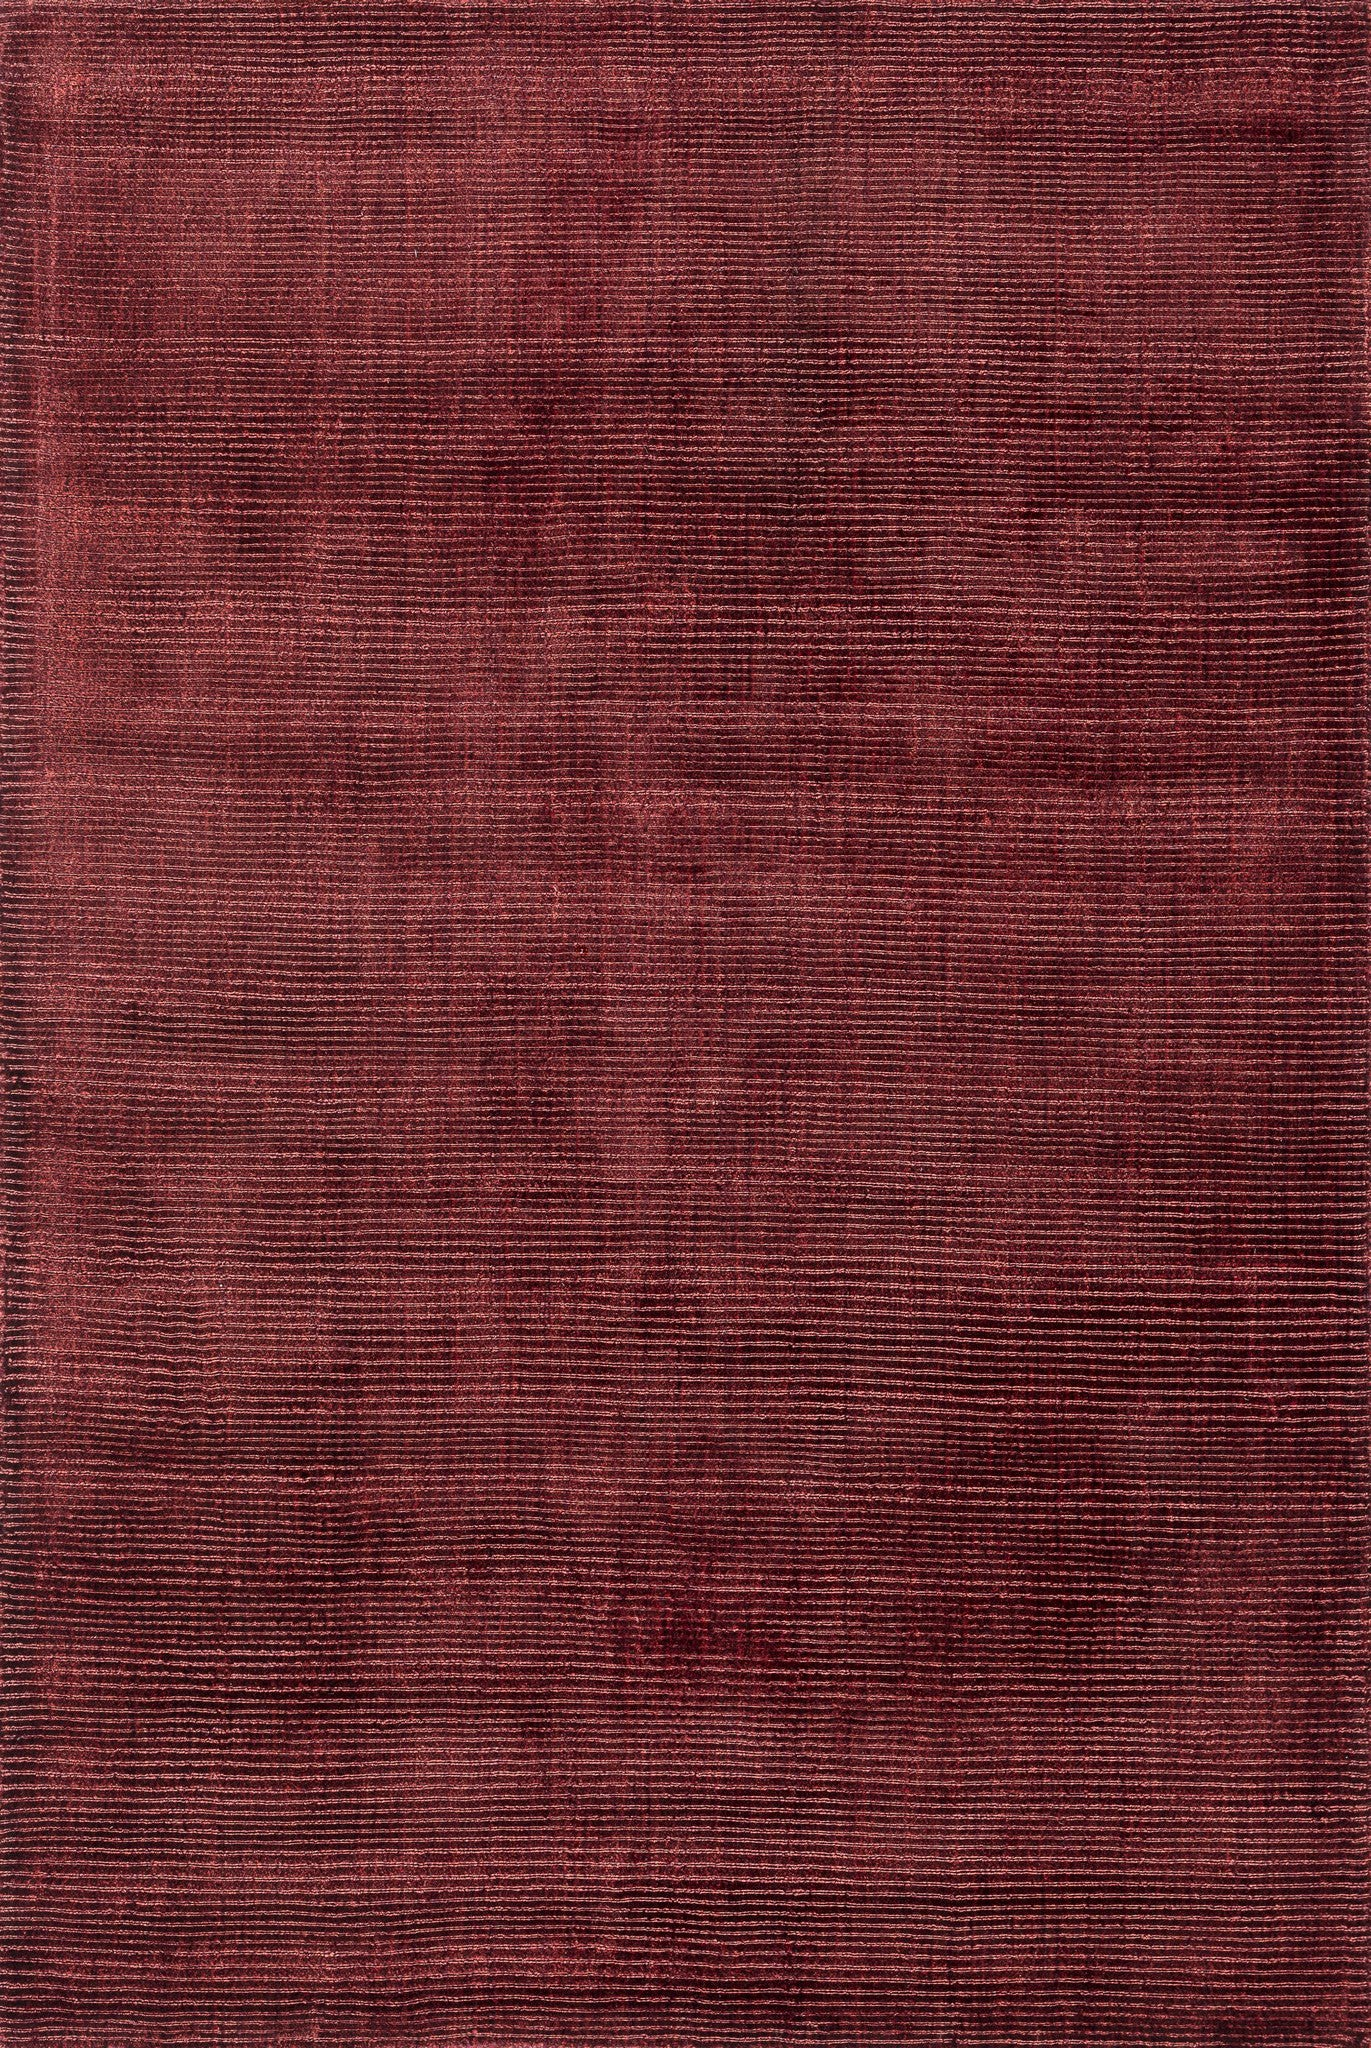 Loloi Luxe LX-01 Ruby Area Rug main image